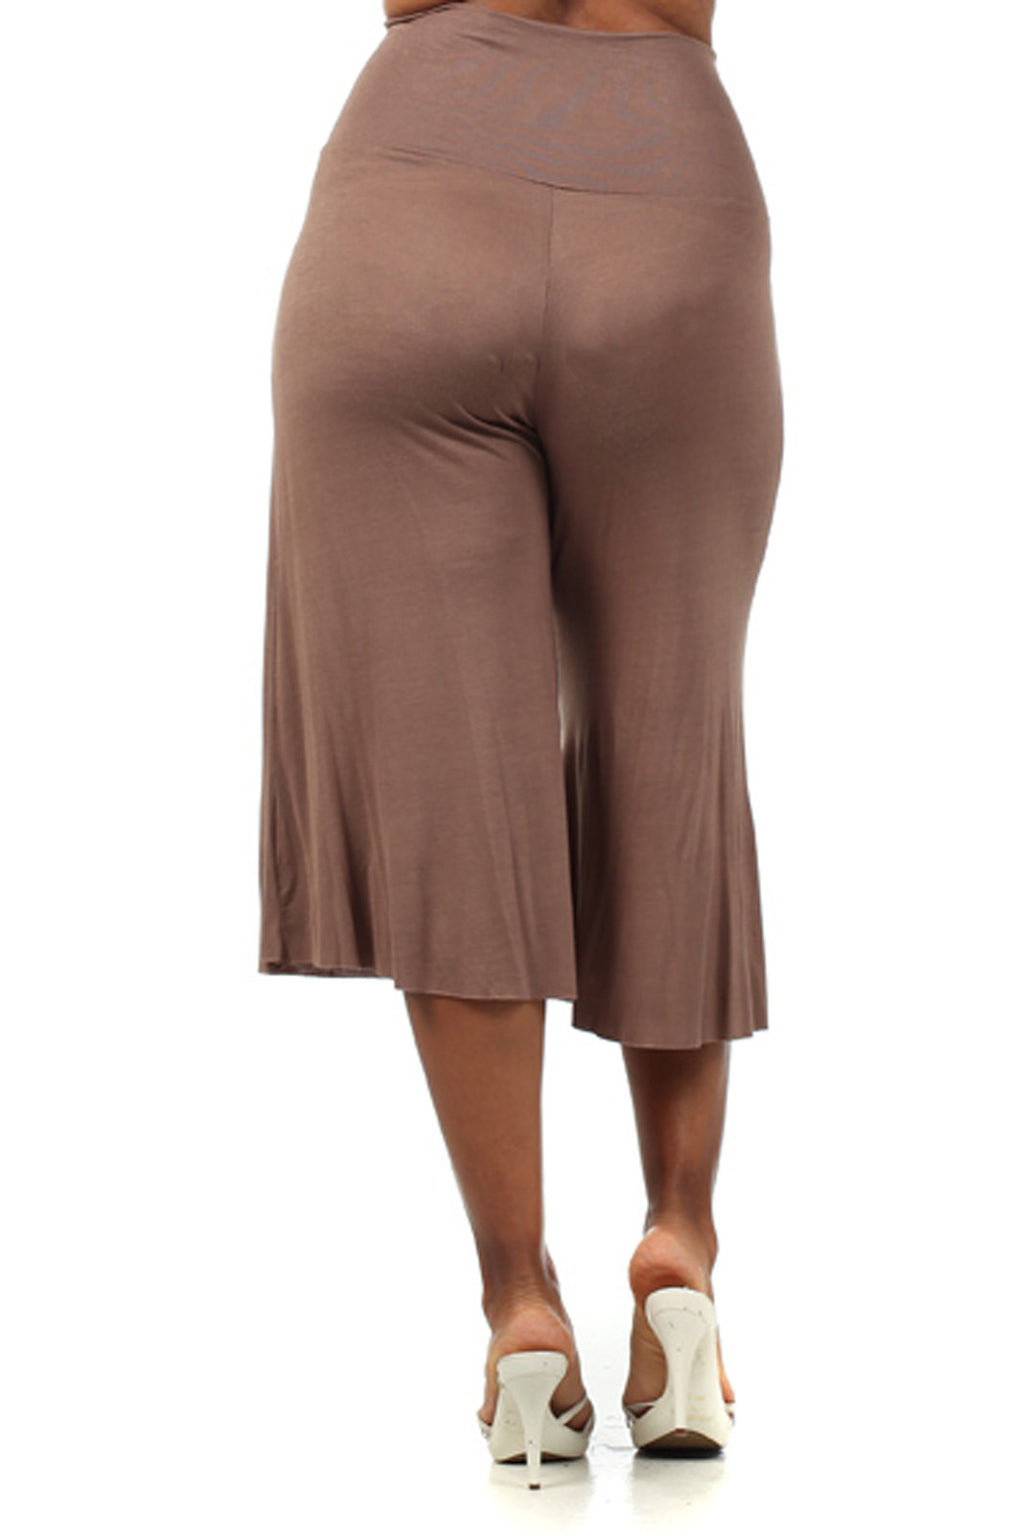 Plus Size Gaucho Pants - Mommylicious